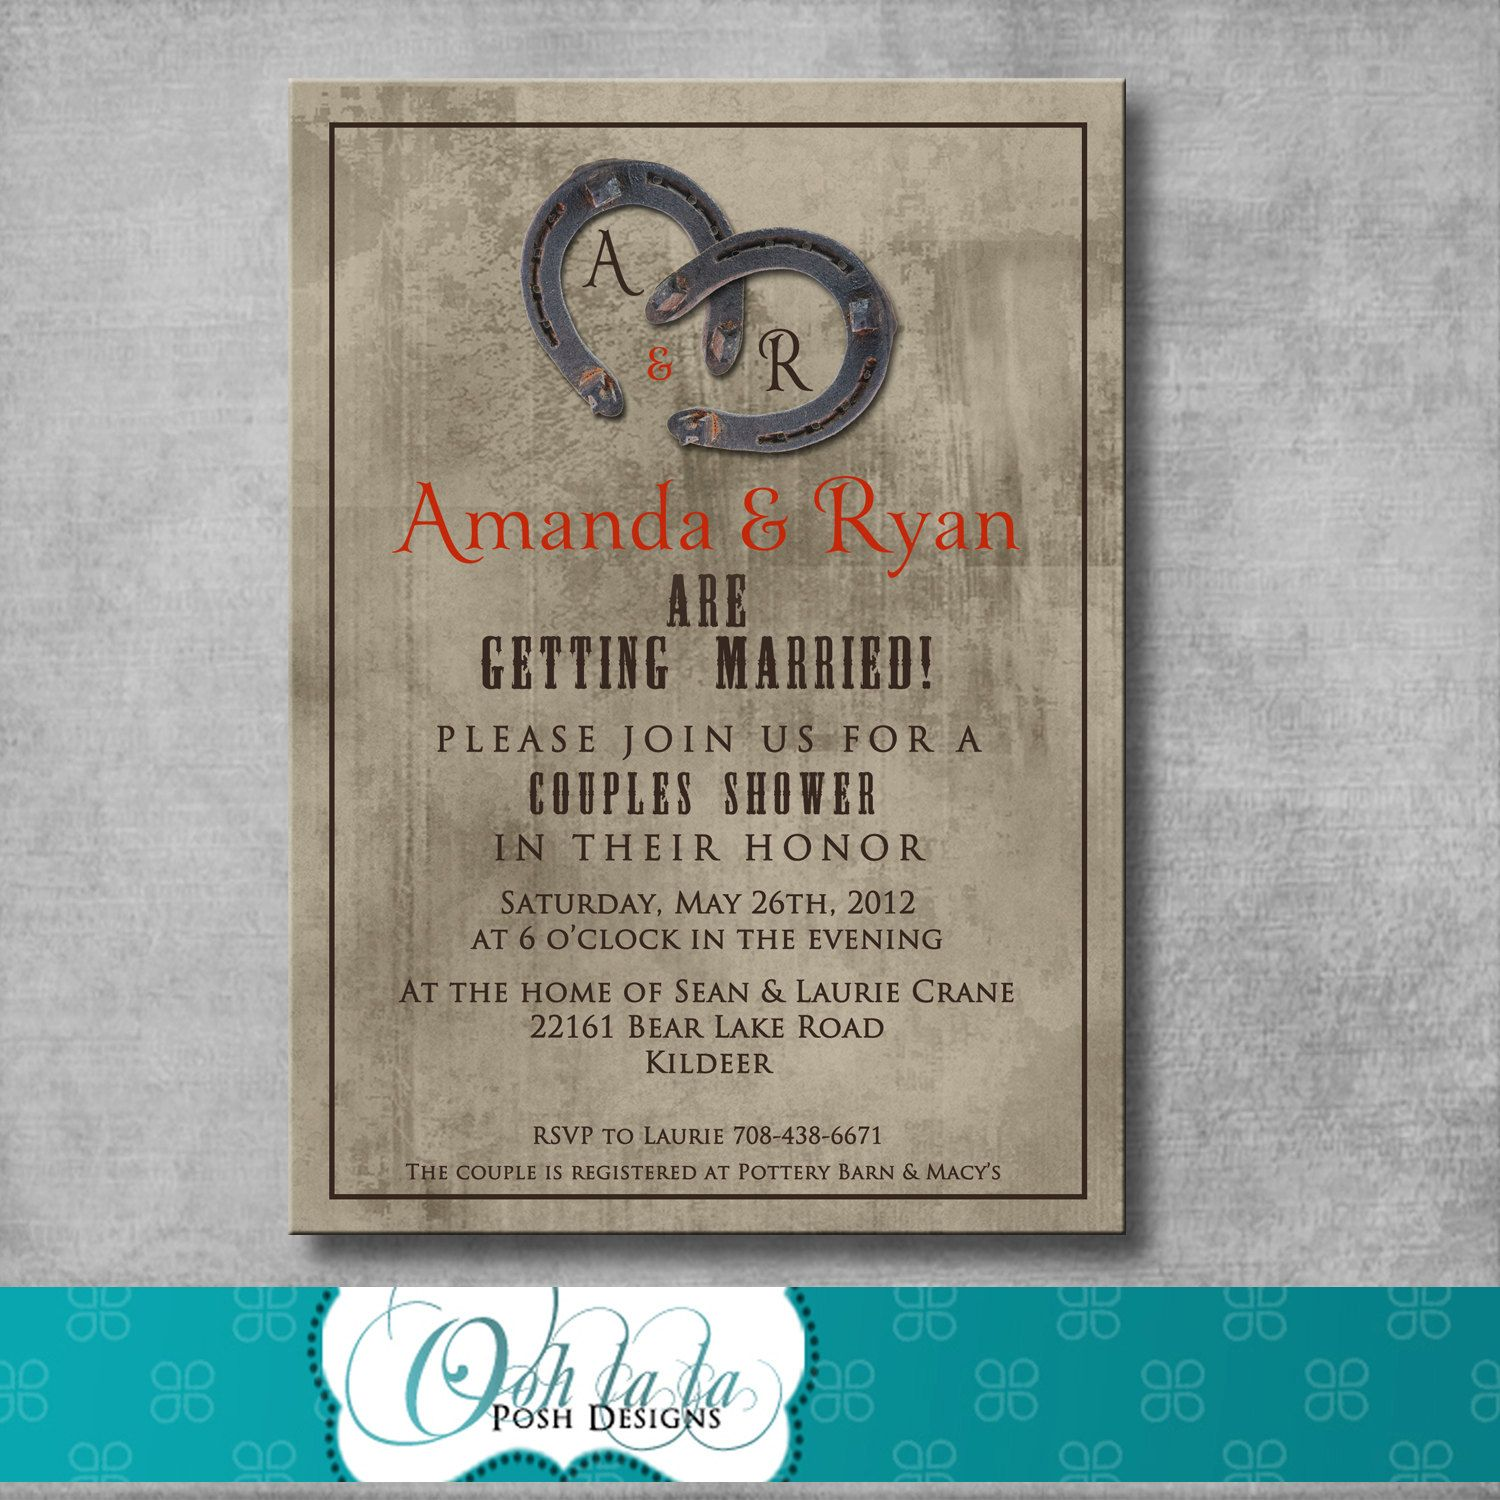 diy wedding invites rustic%0A Rustic Charm Couples Shower Invitation DIY by OohlalaPoshDesigns